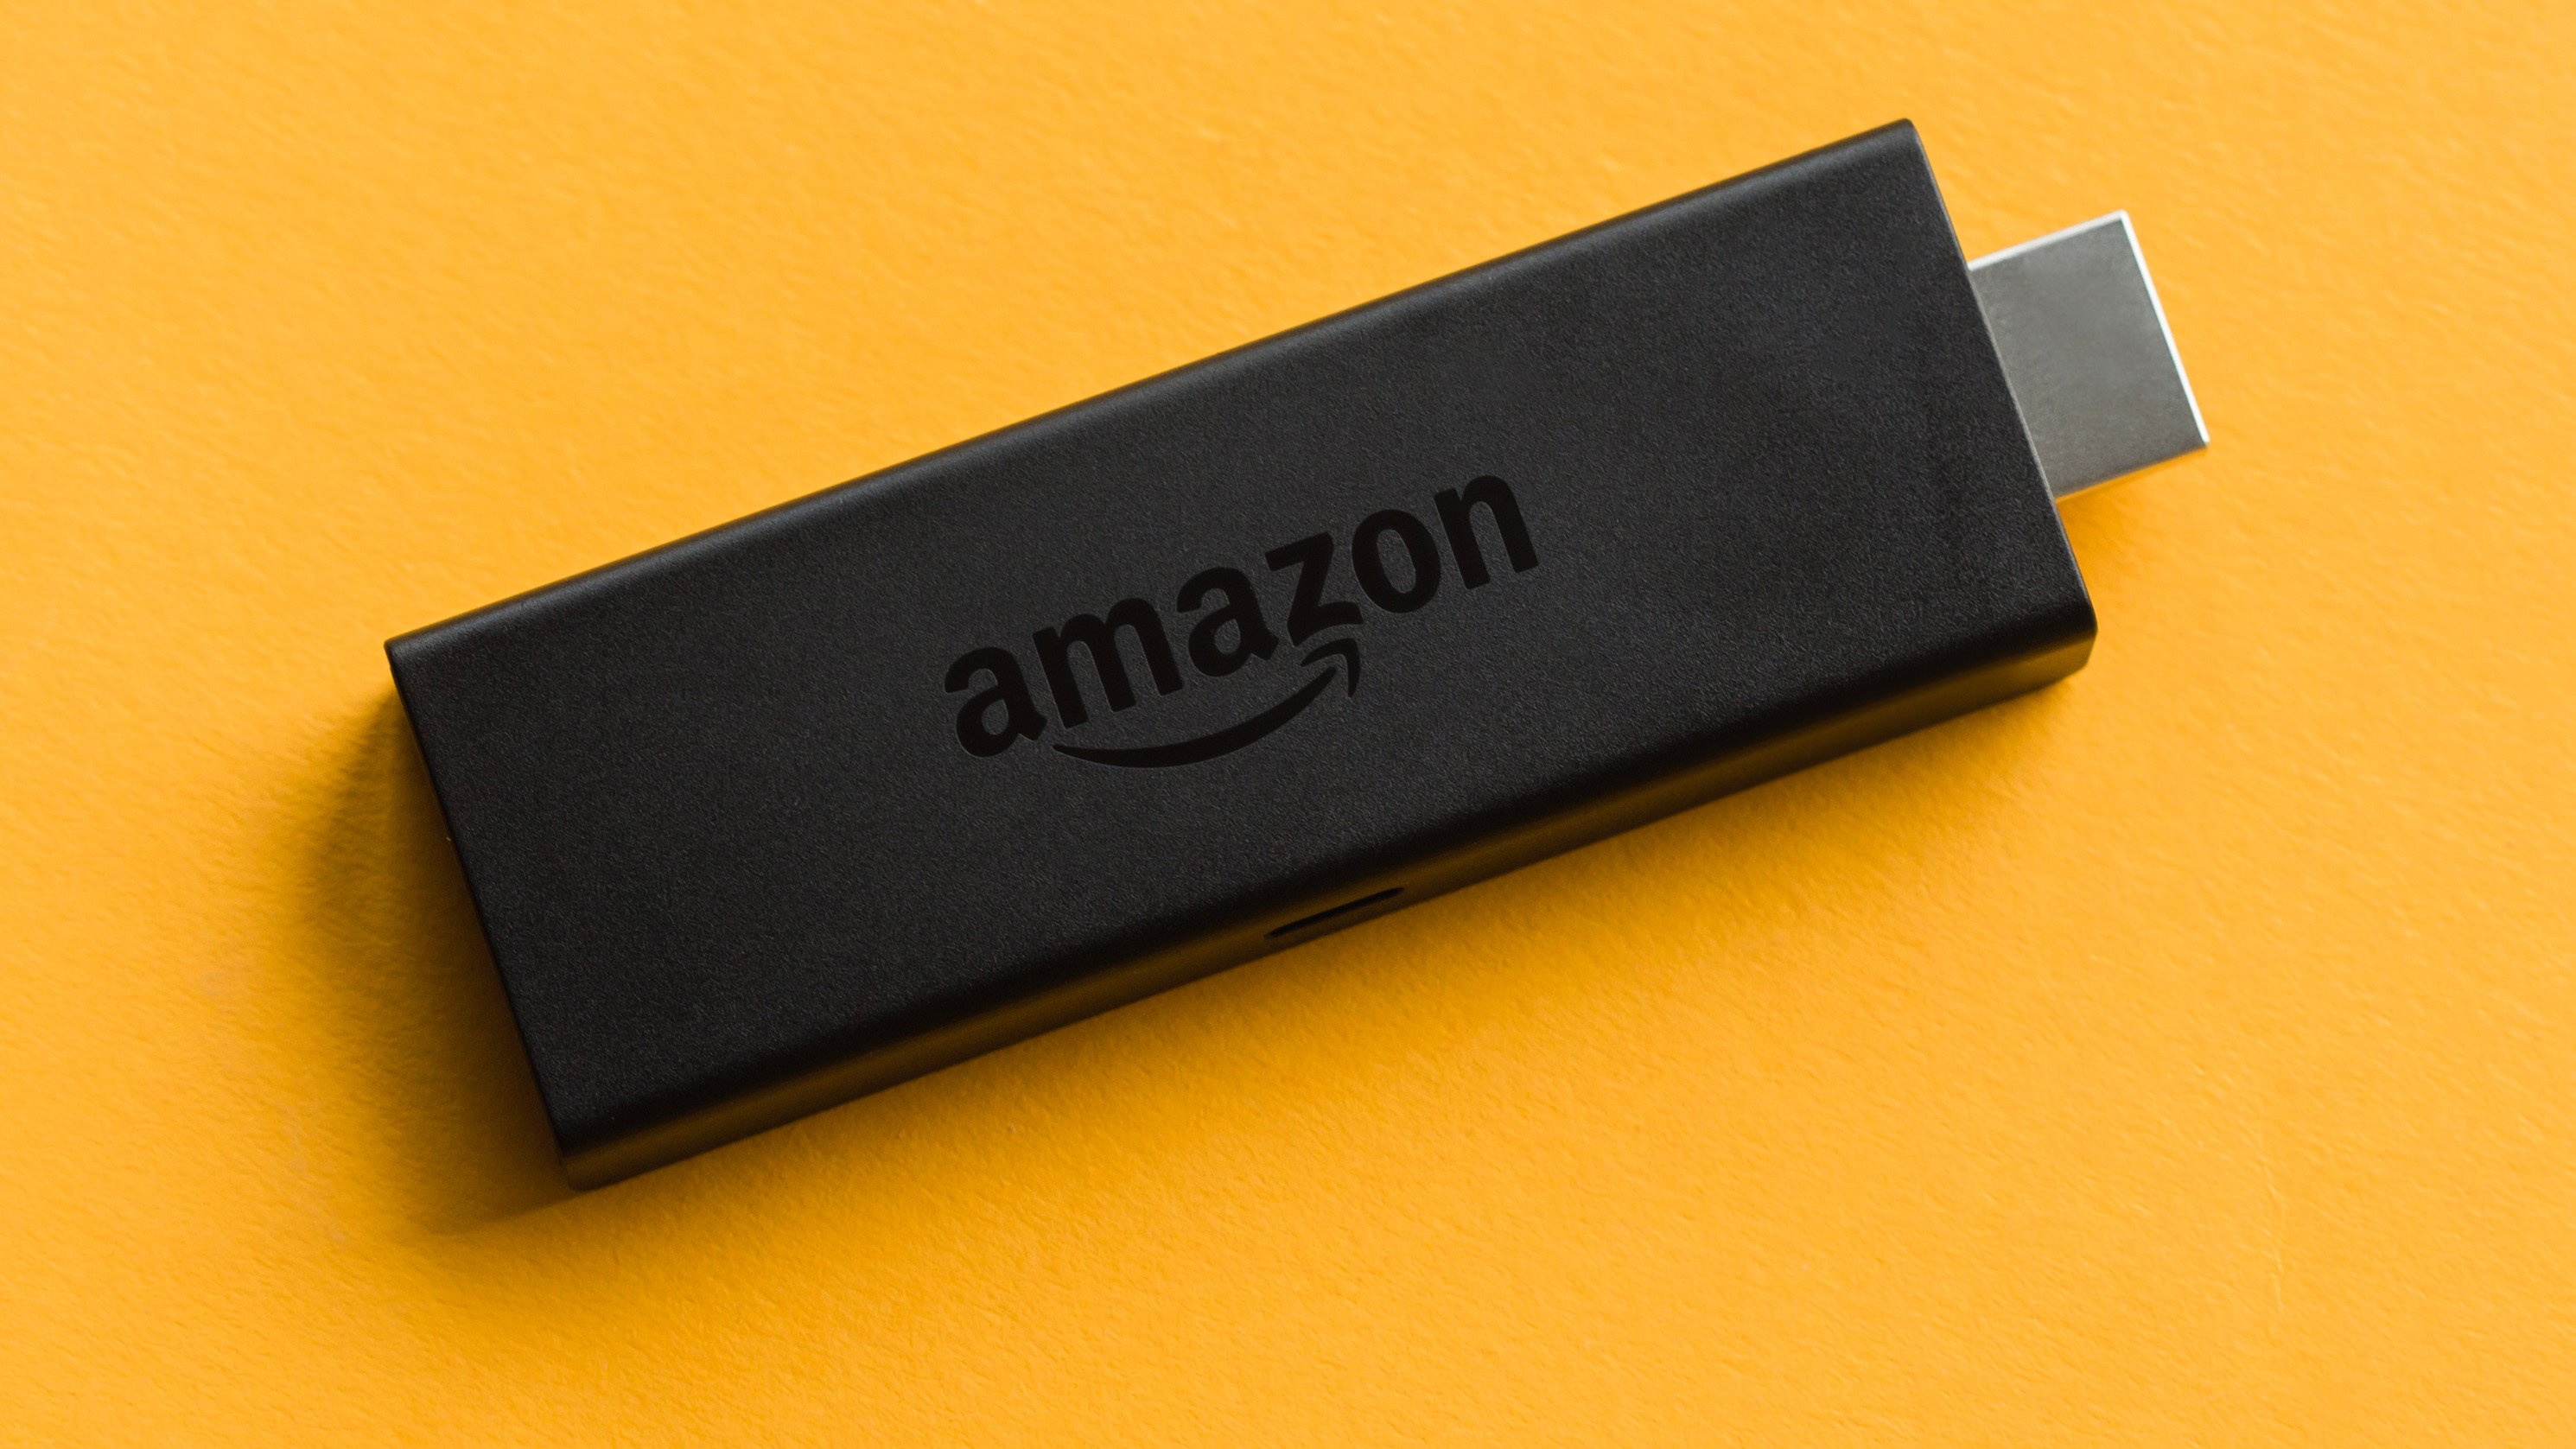 amazon konto fire tv stick funktooniert nicht